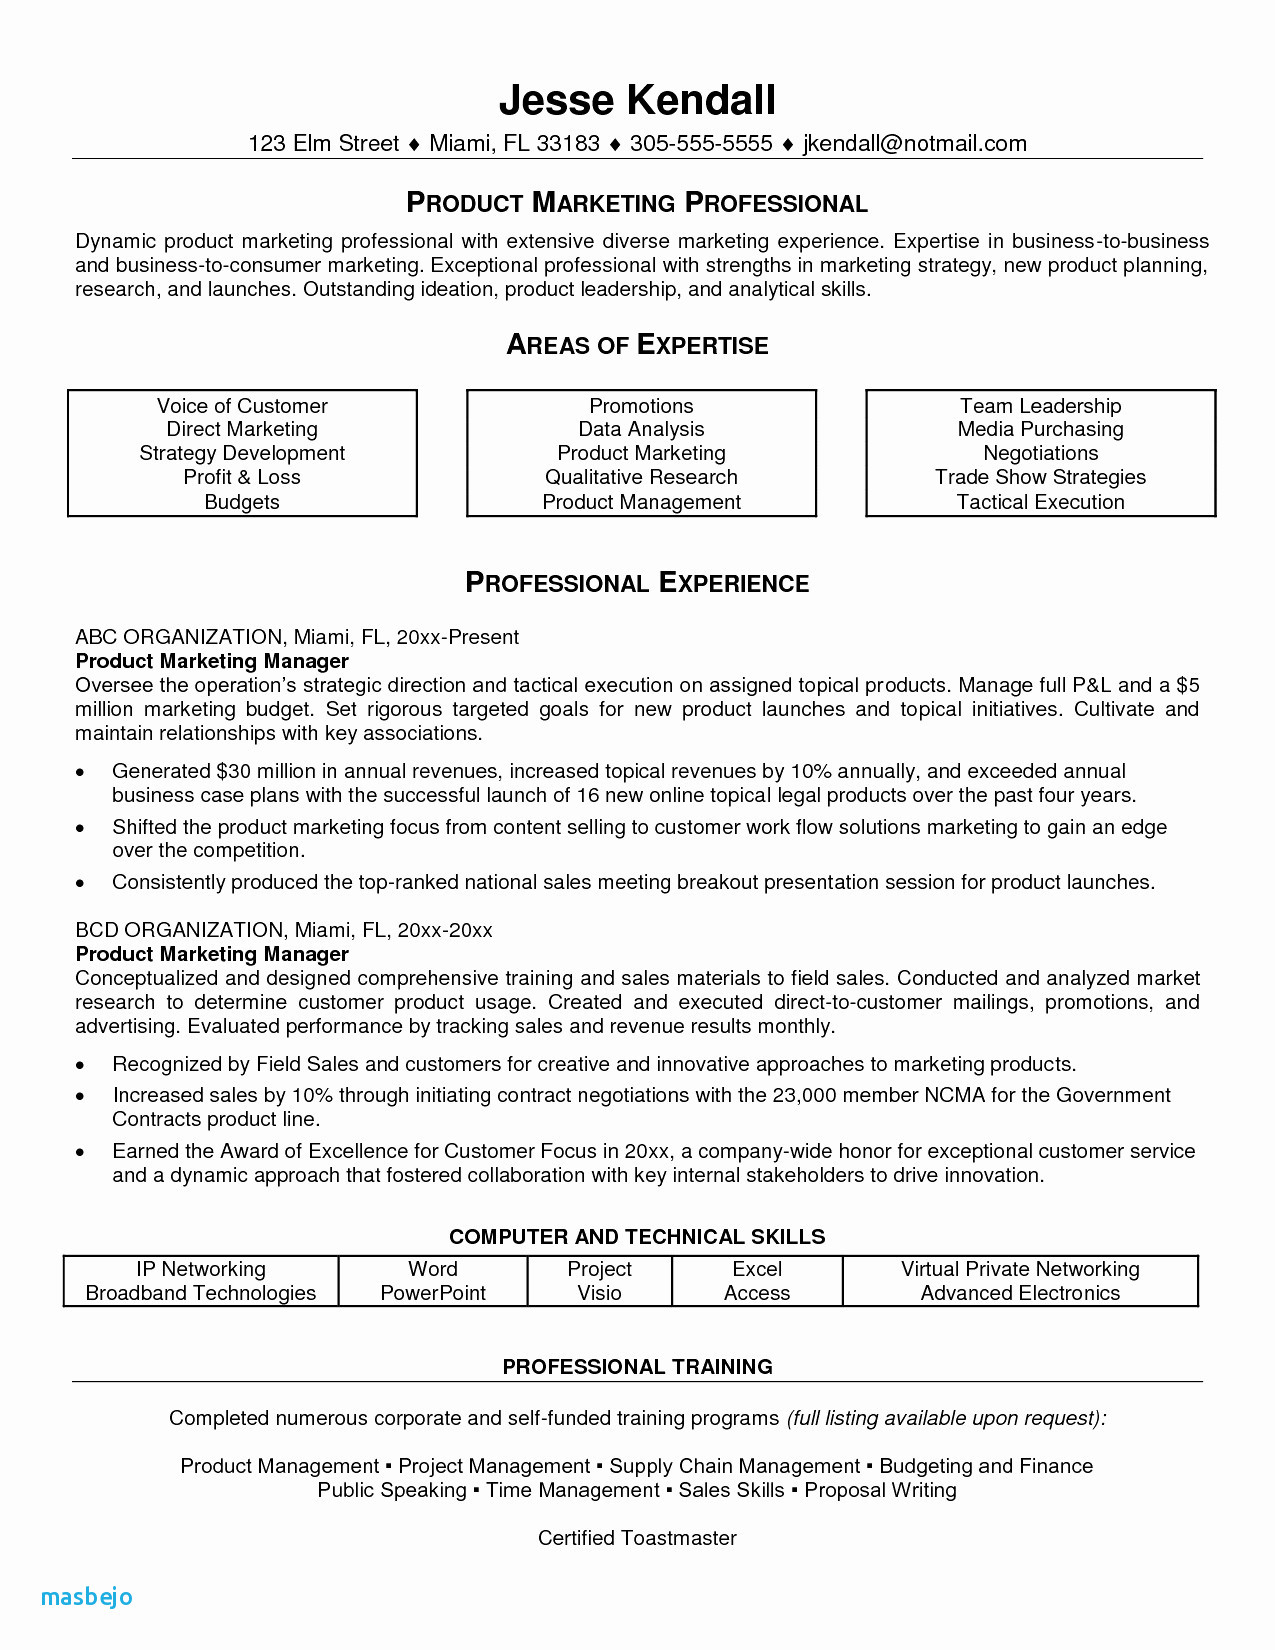 paralegal resume skills Collection-Marketing Skills Resume Elegant Research Skills Resume New Paralegal Resume 0d Wallpapers 43 10-k